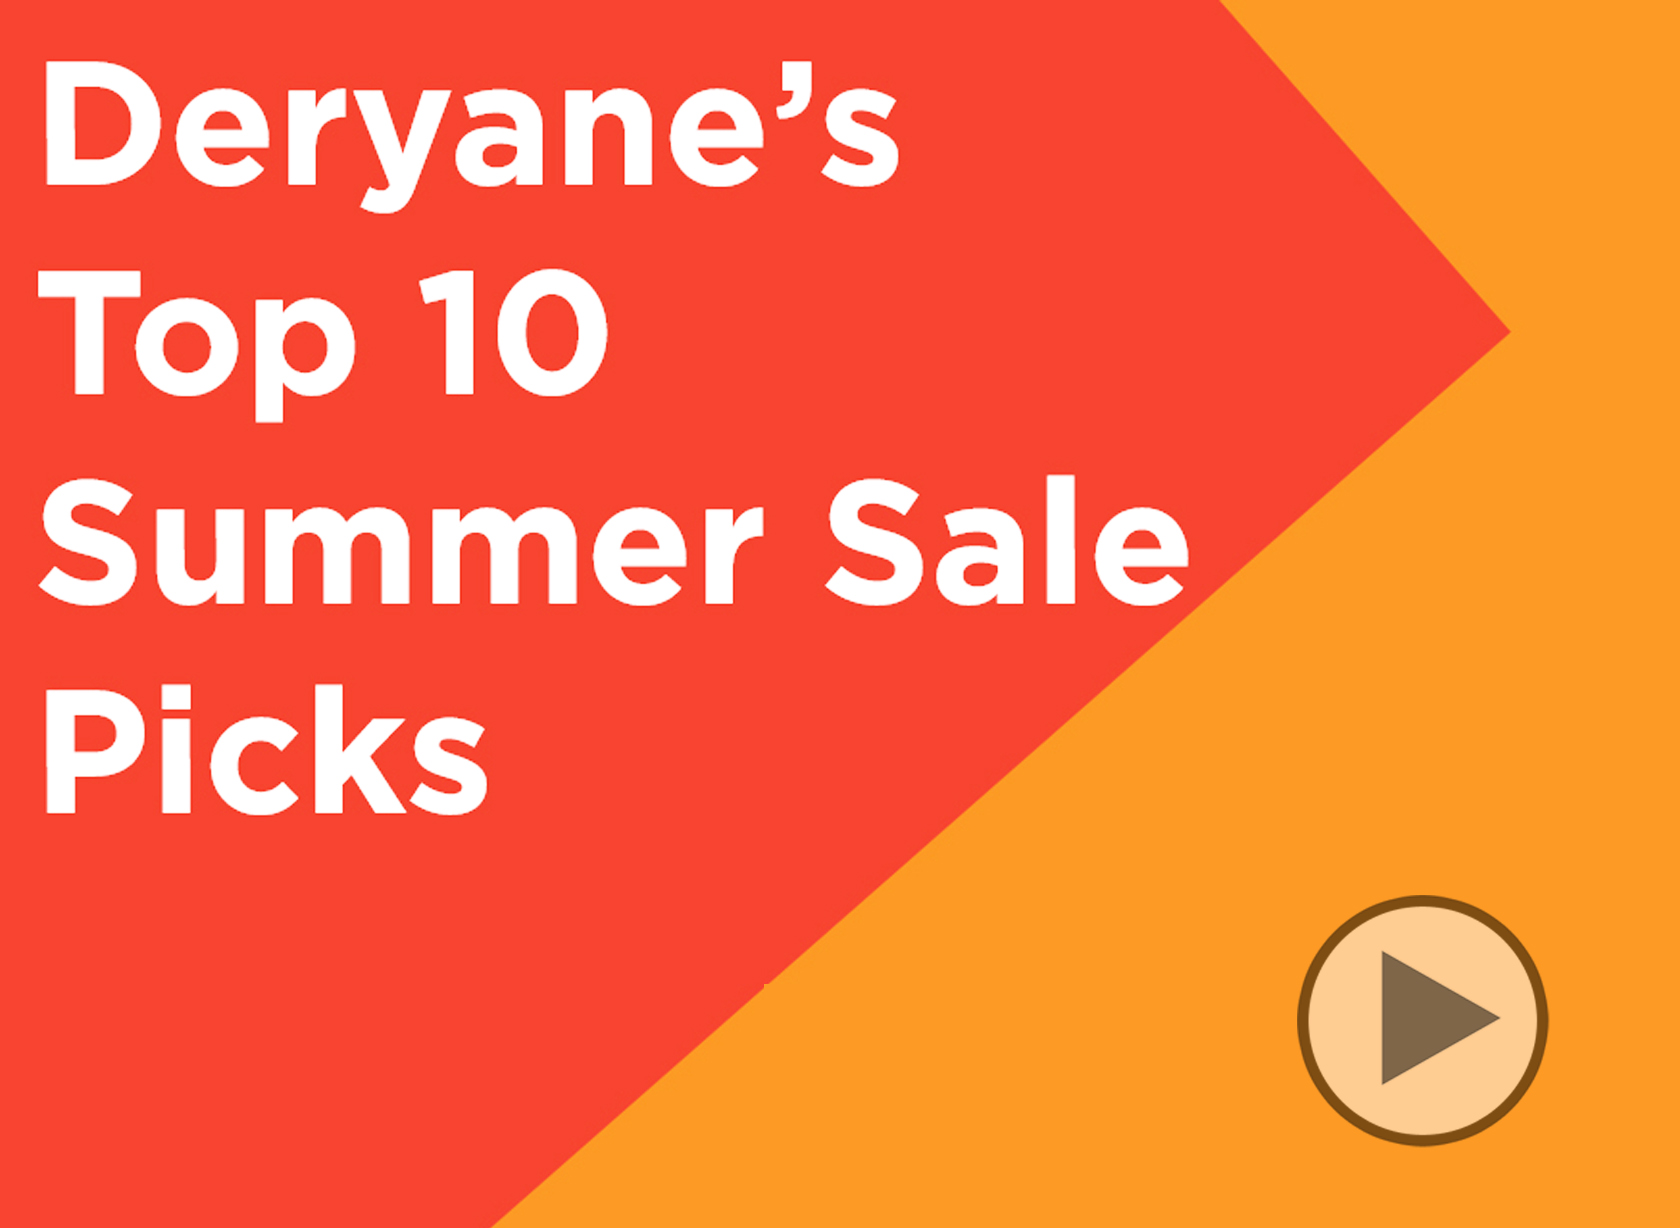 DR SALE: DERYANE'S TOP 10 SALE PICKS